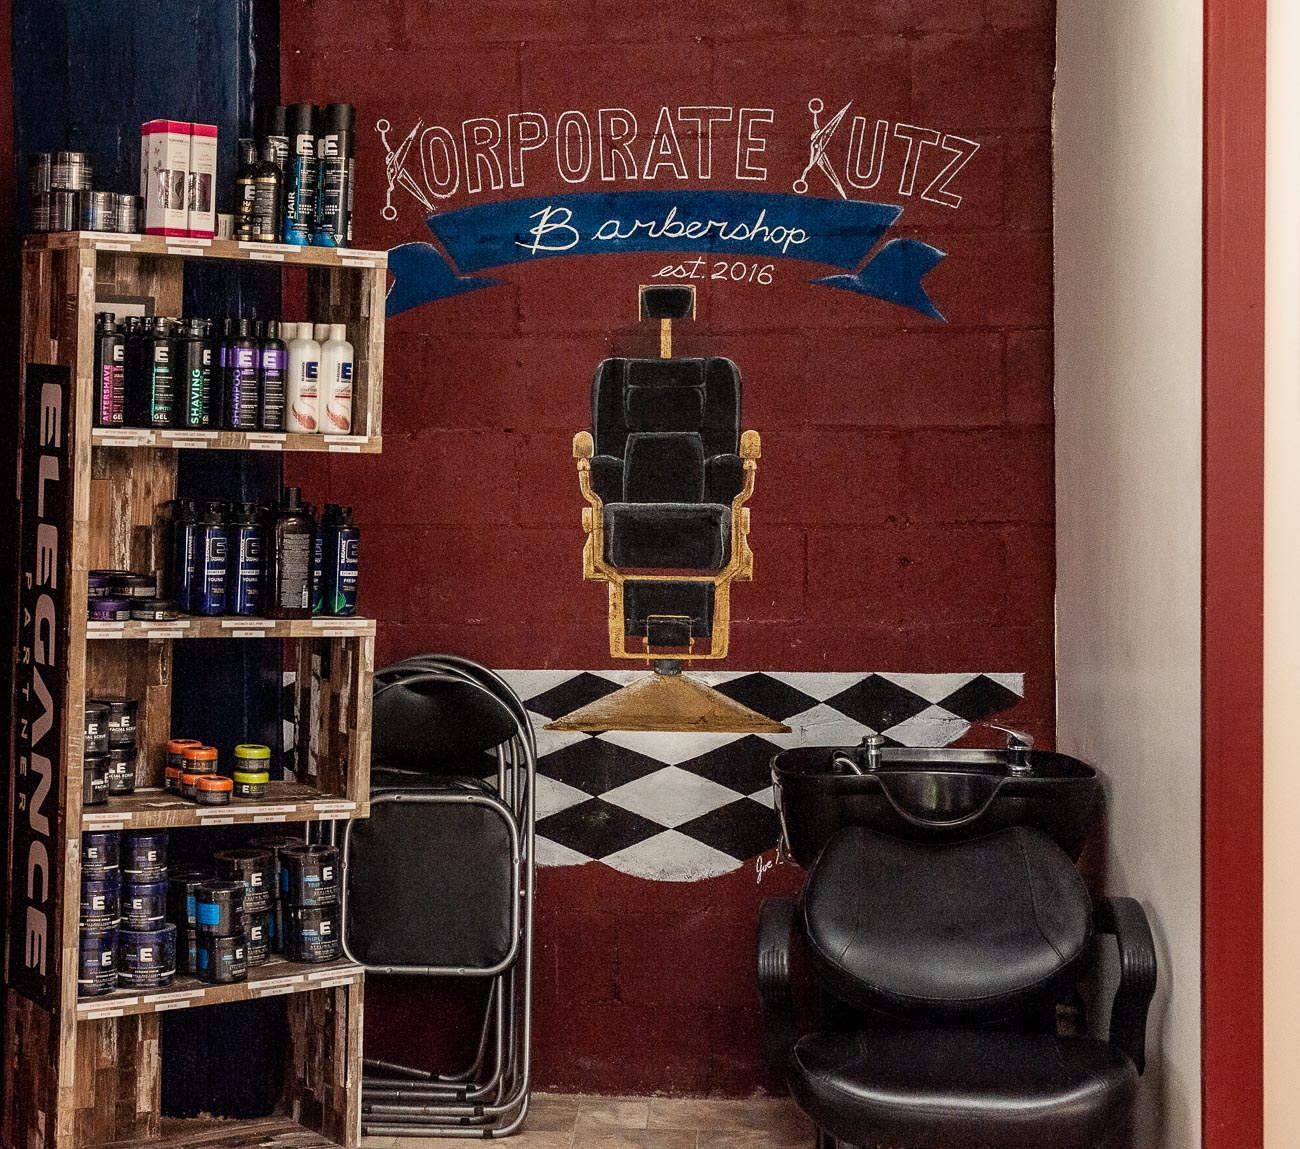 Korporate Kutz is a barbershop Downtown that is designed to provide a premium salon experience at an affordable price. The friendly shop is filled with professional stylists who offer haircut and grooming services such as line ups, designs, shaving, waxing, facials, and more. ADDRESS: 120 E 7th Street (45202) / Image: Kellie Coleman // Published: 7.29.20